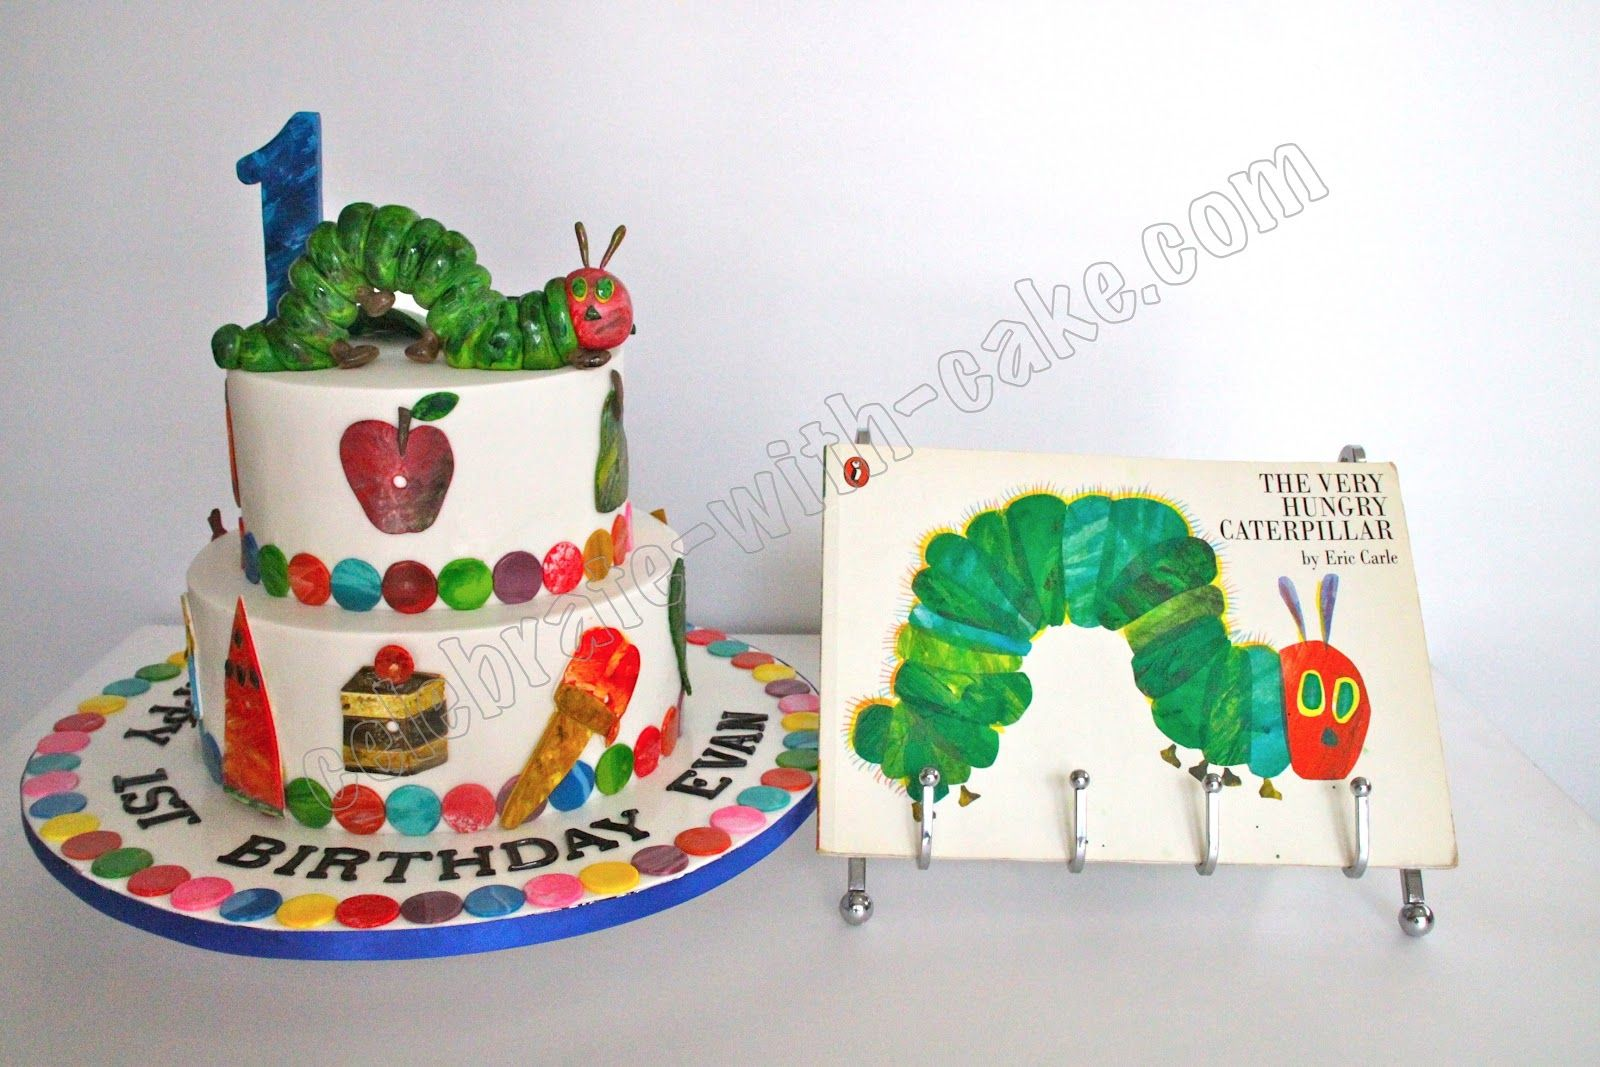 Celebrate With Cake The Very Hungry Caterpillar